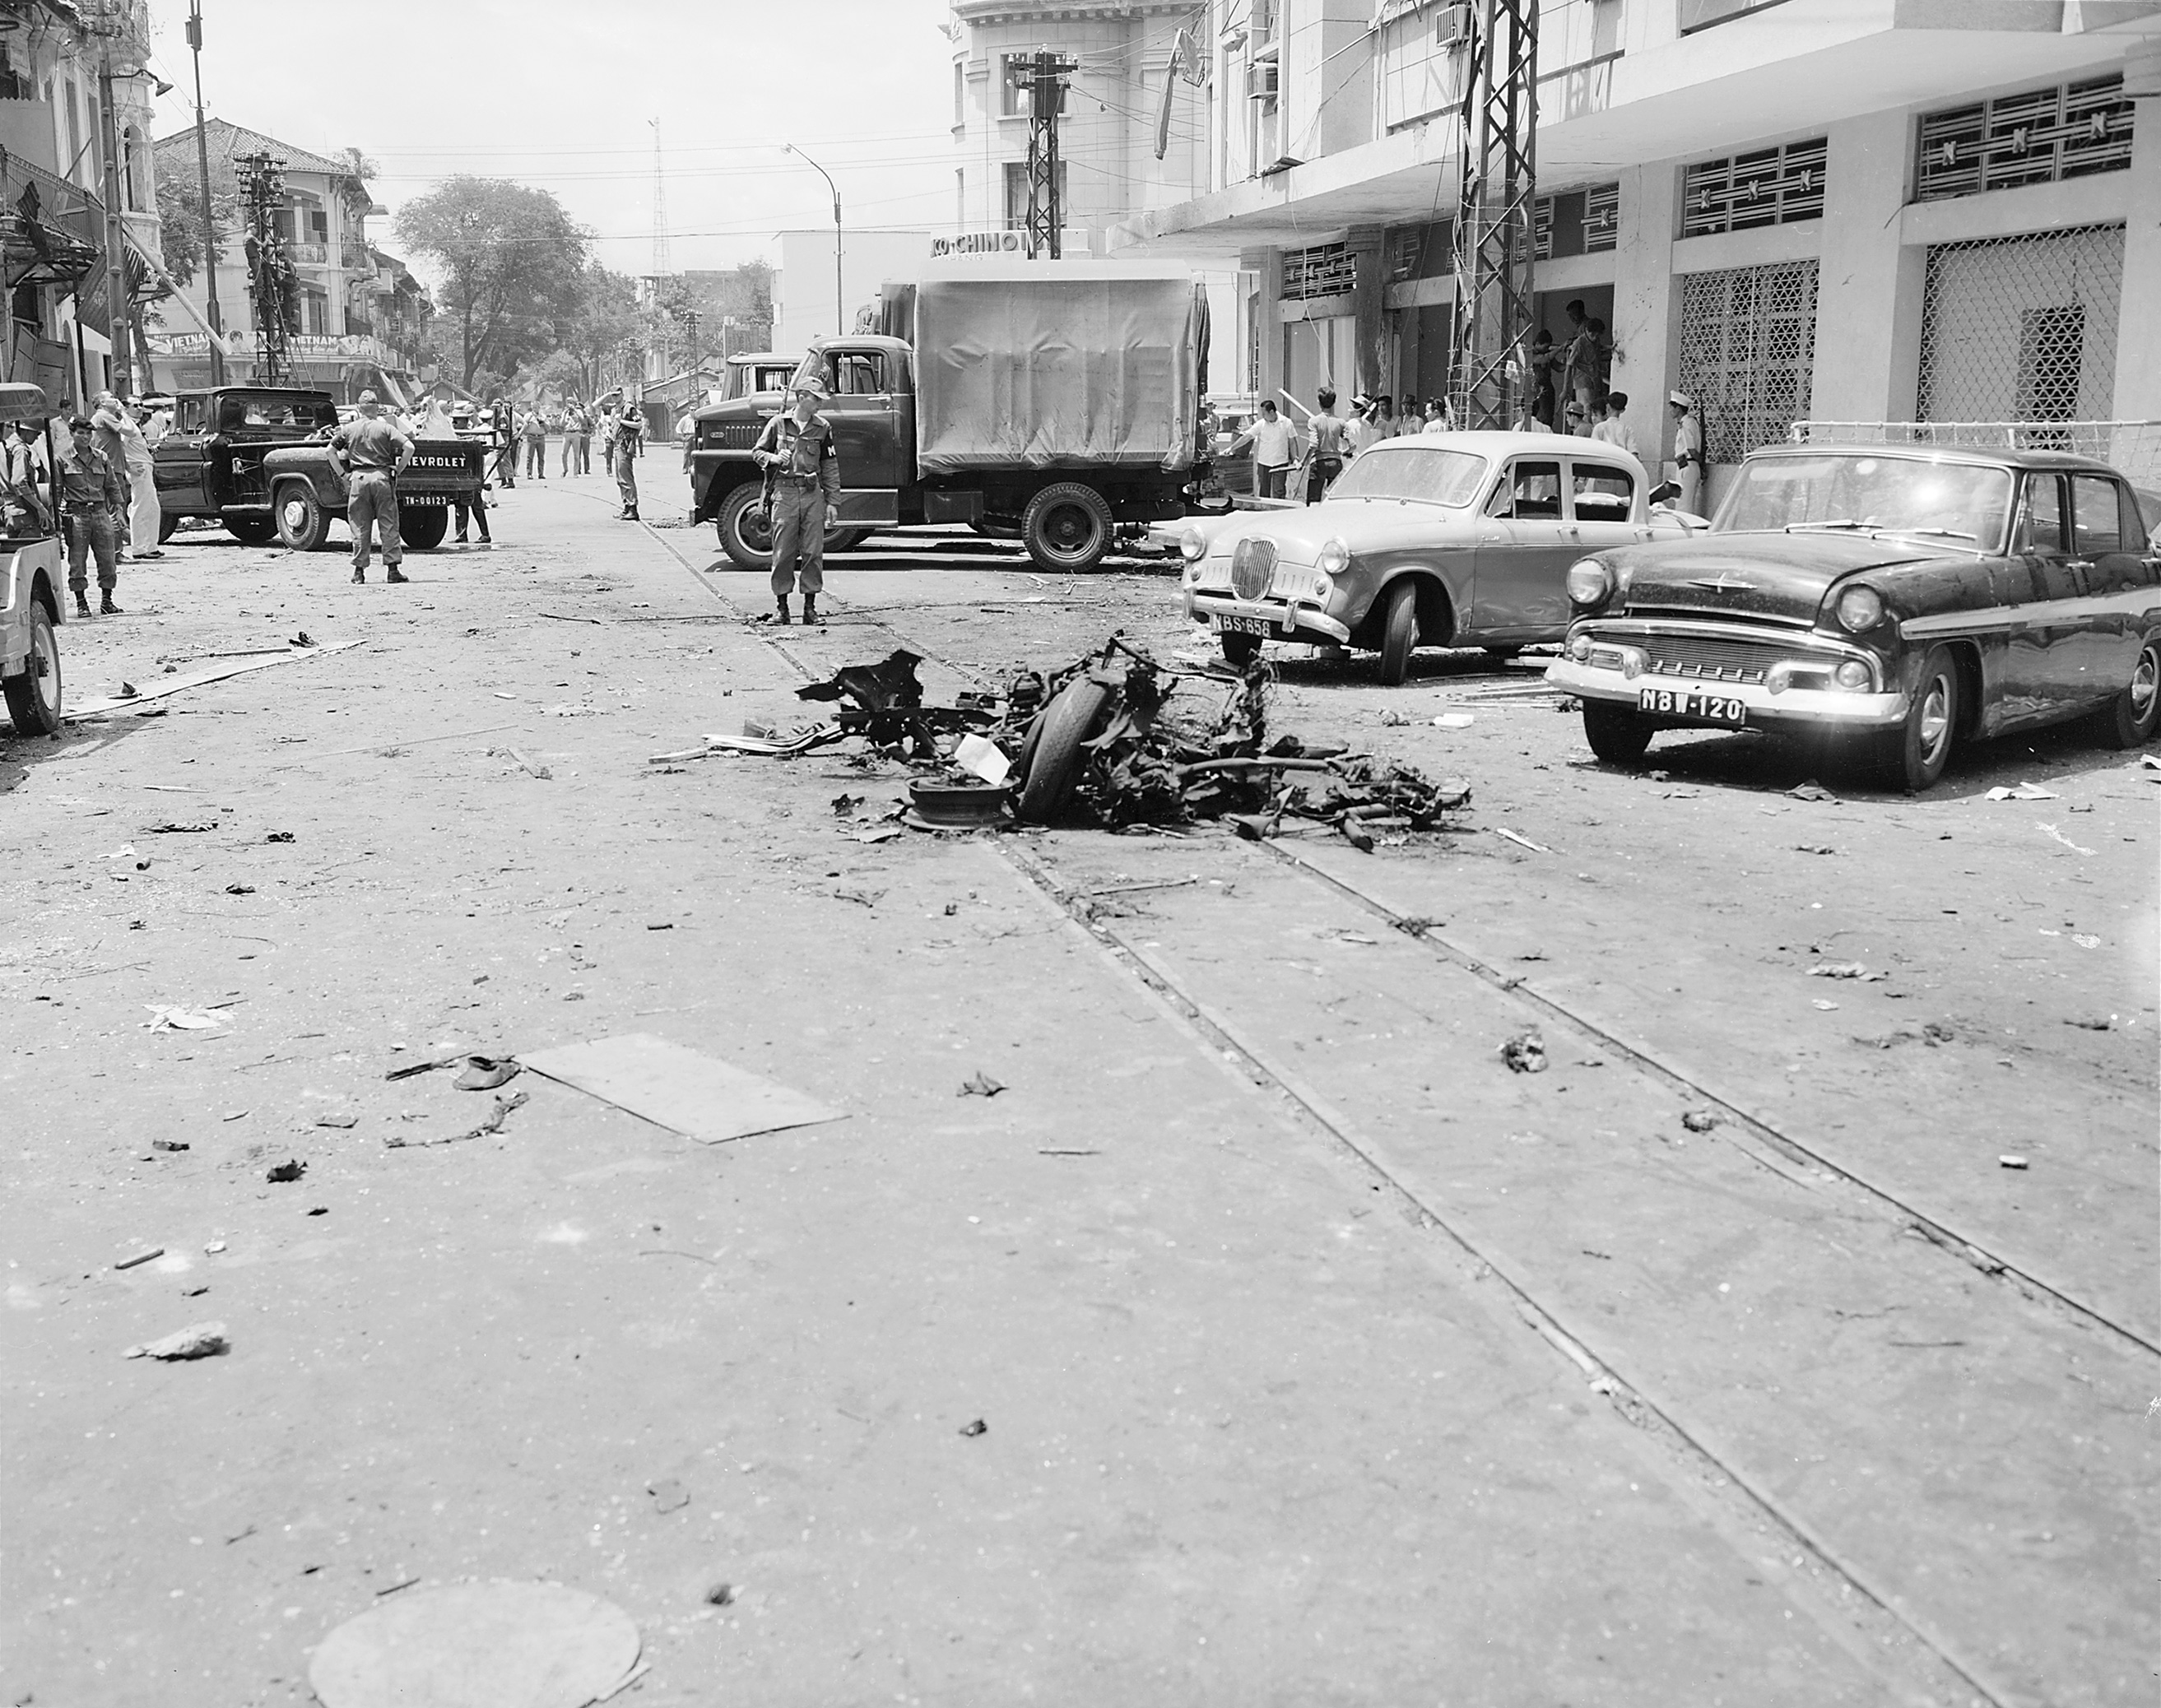 Guerra de la pulga Scene_of_Viet_Cong_terrorist_bombing_in_Saigon,_Republic_of_Vietnam.,_1965